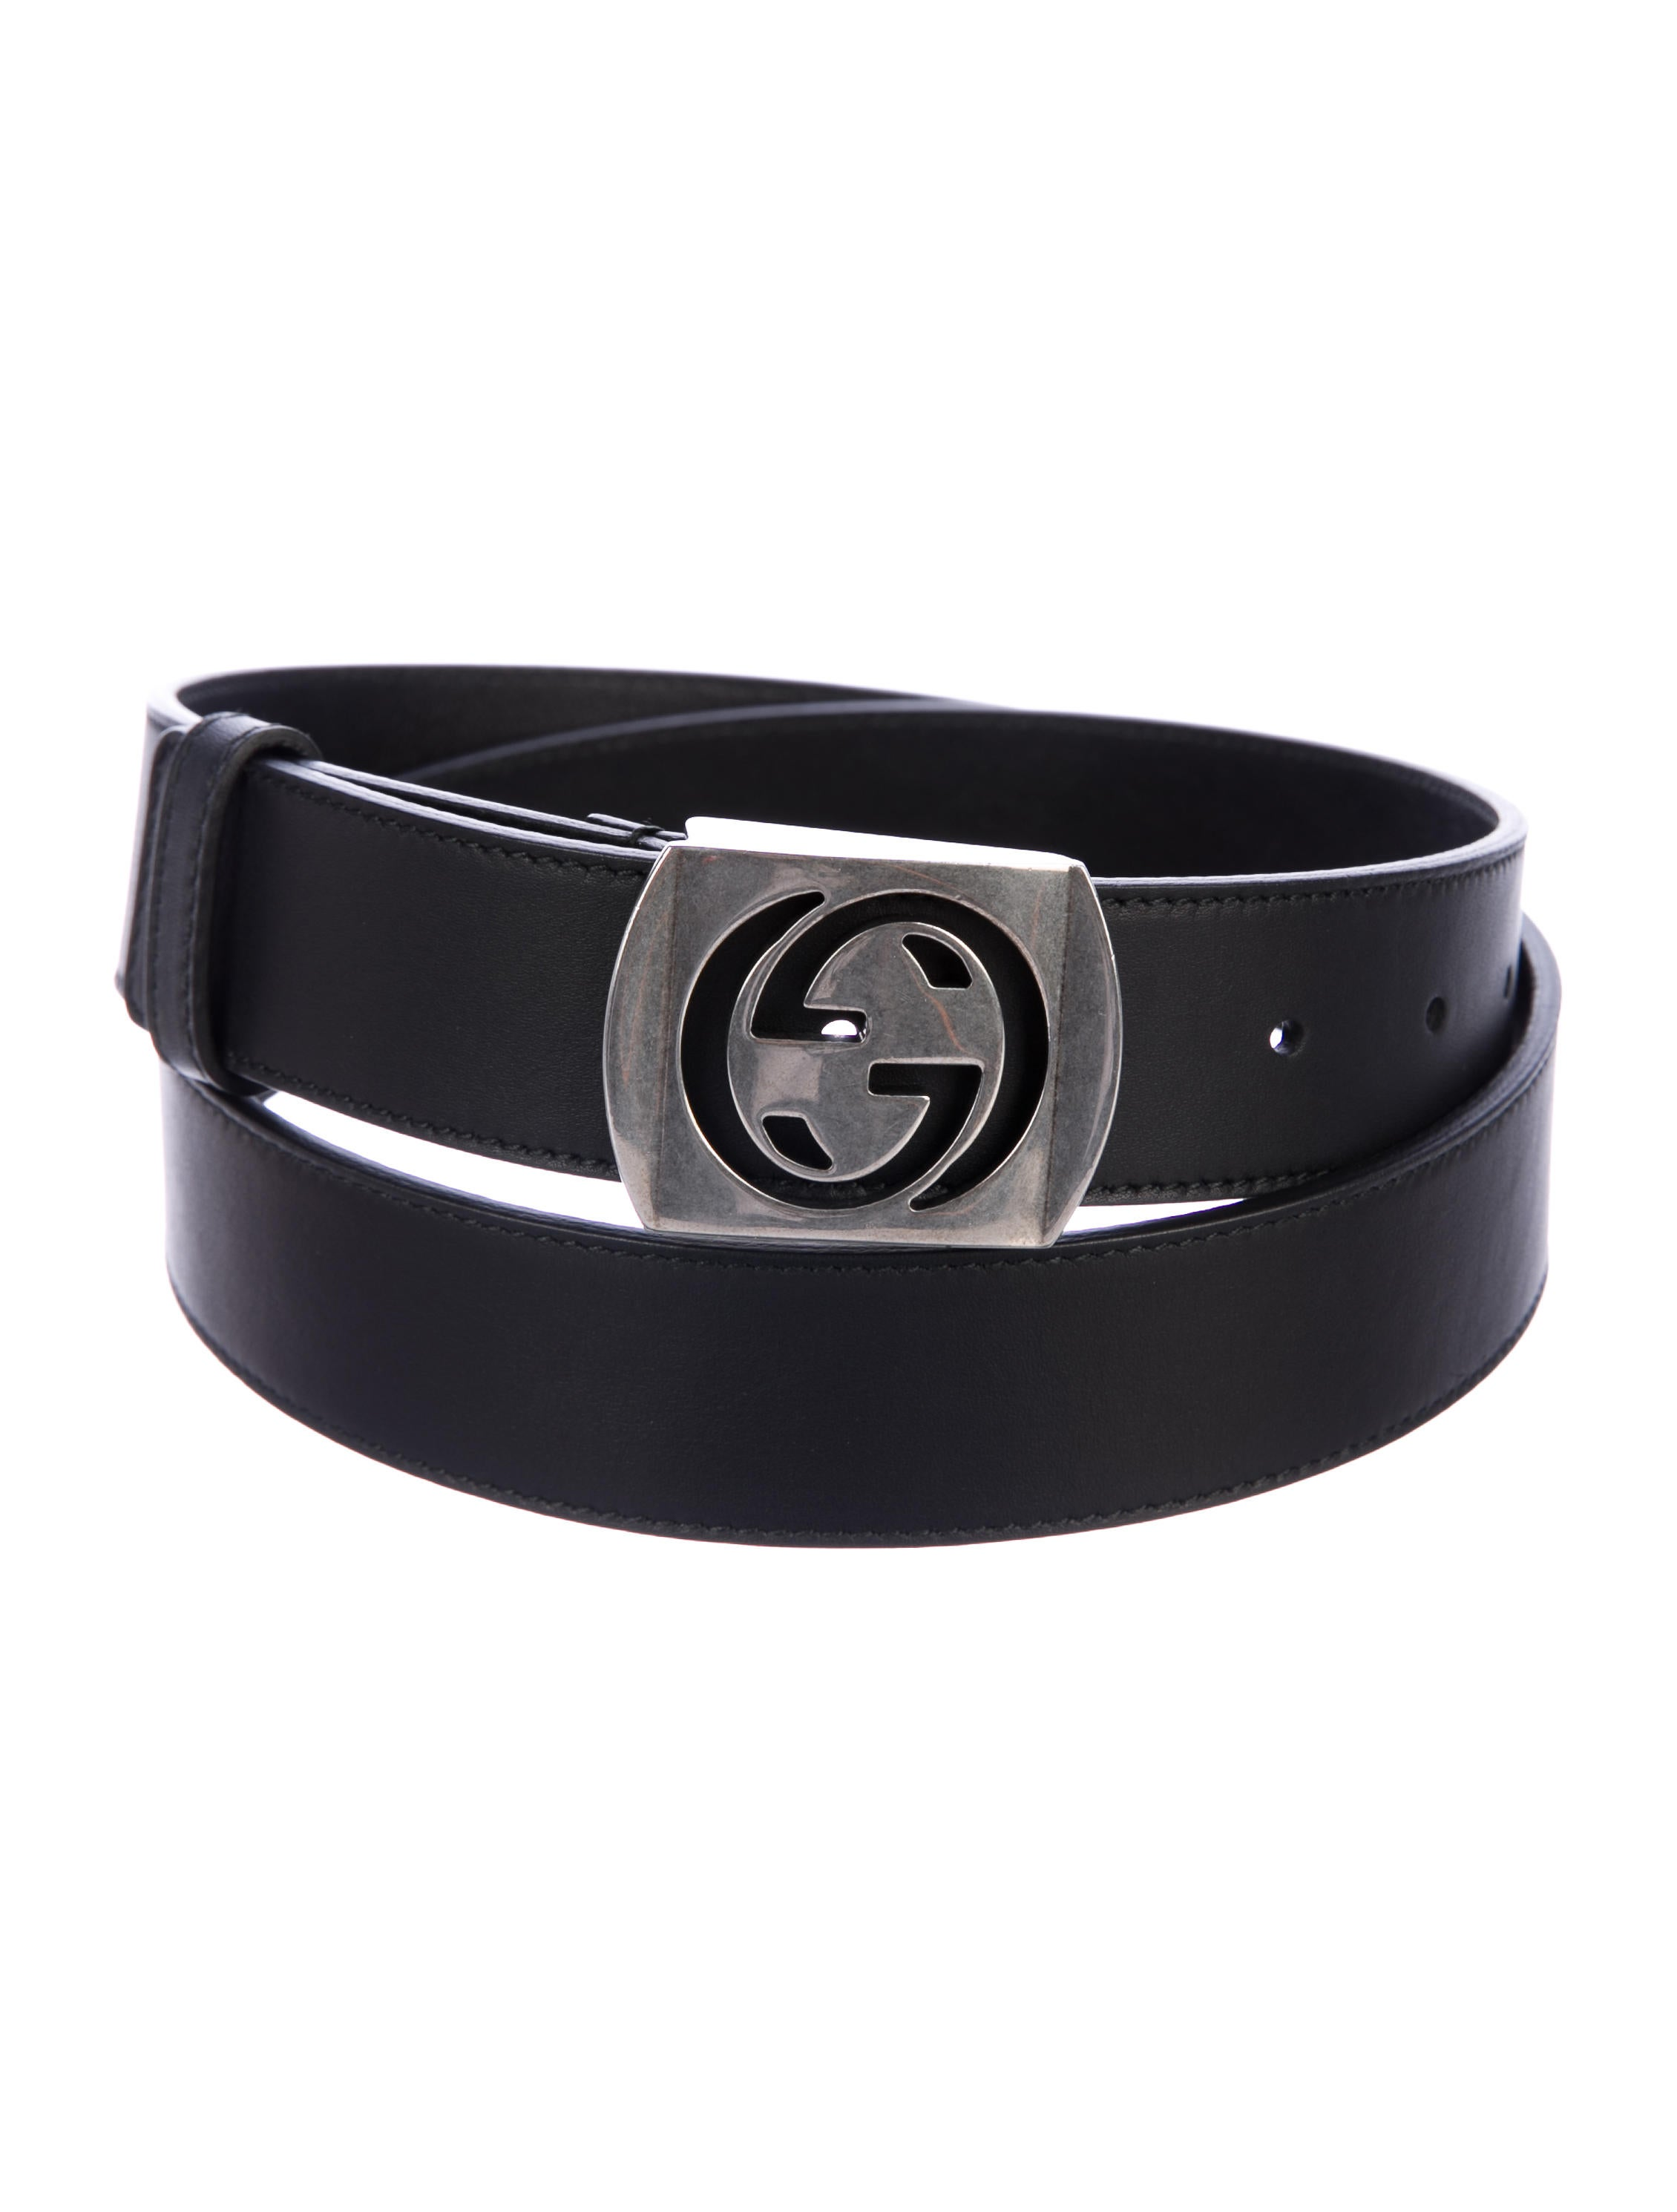 f2bfa0a33 Gucci GG Leather Belt - Accessories - GUC218267   The RealReal